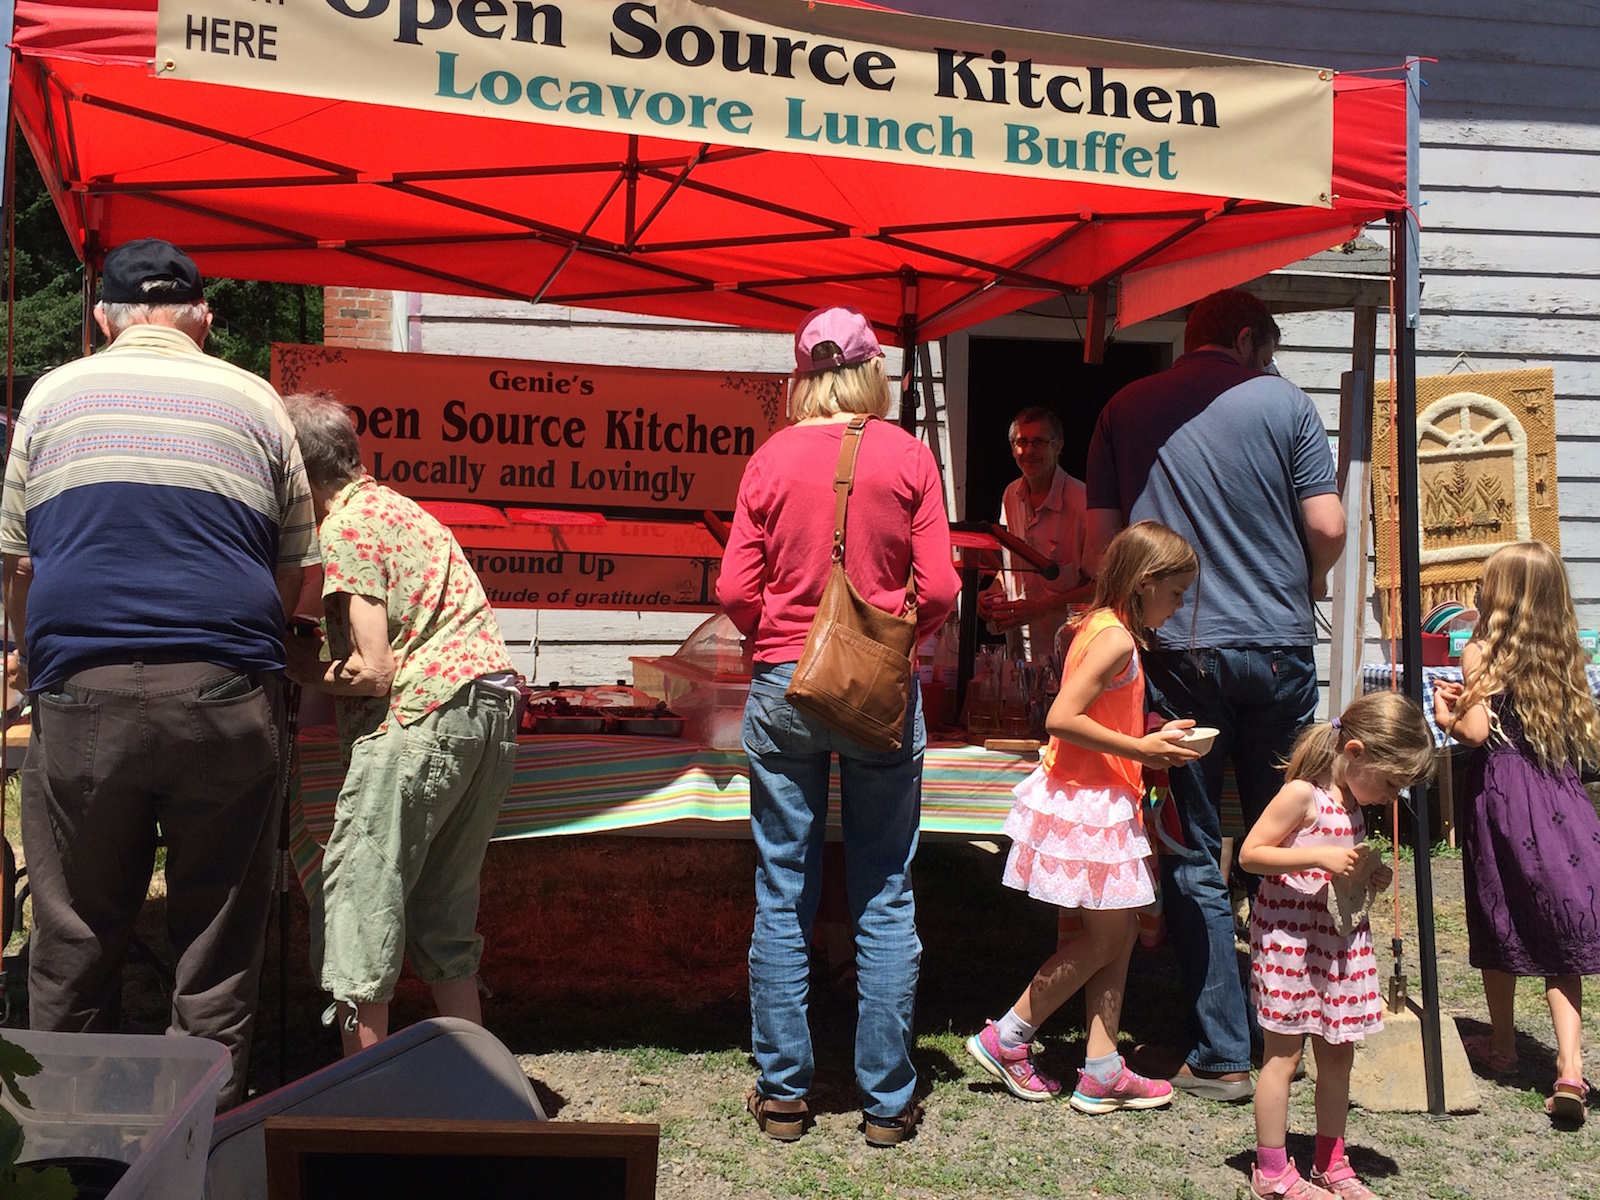 Delicious Locavore Lunch every Saturday at the Spencer Creek Growers Market